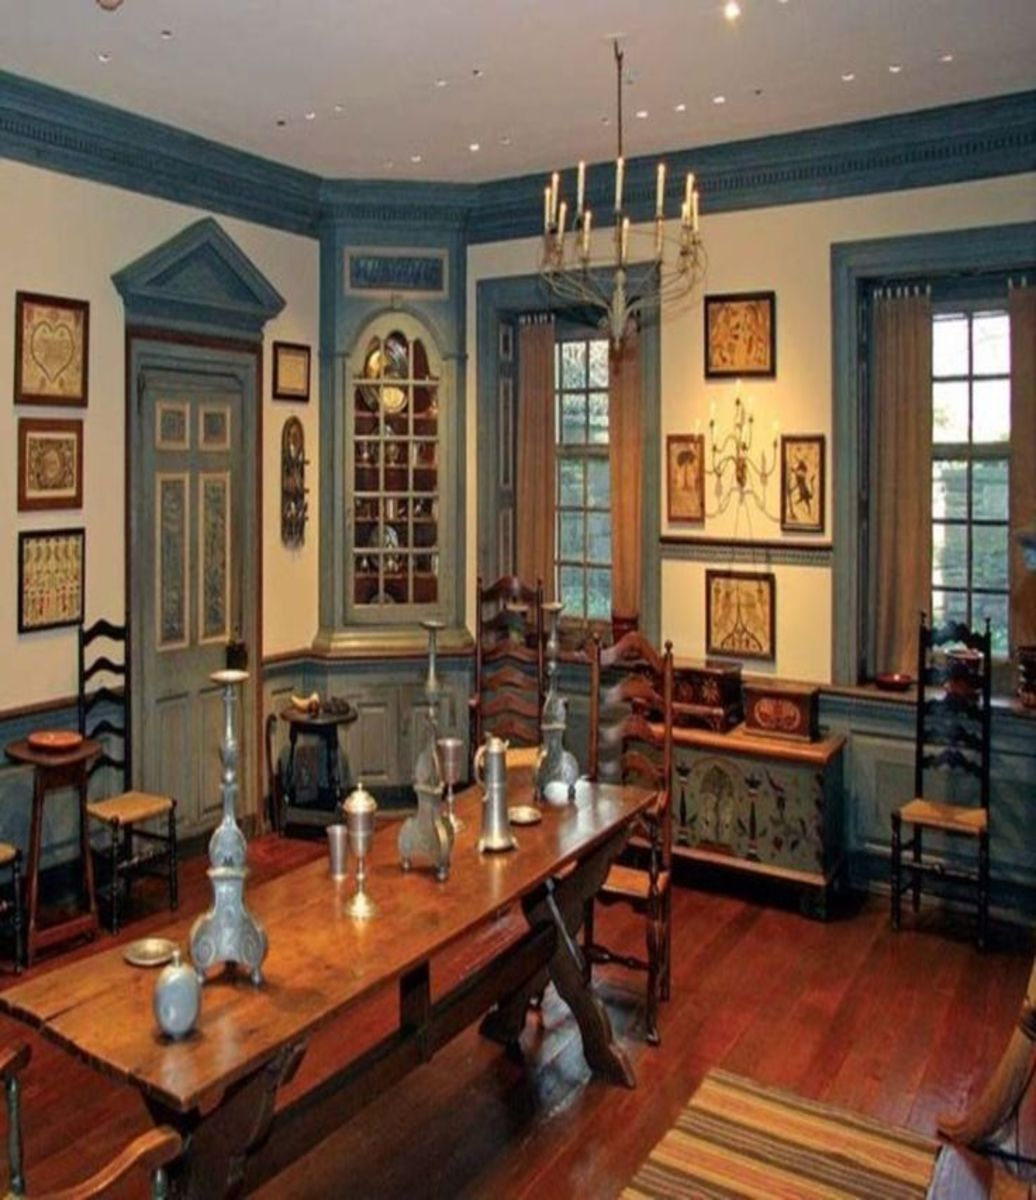 107 Best Images About Period Colonial Room Settings On: The Right Way To Use Trim In Old Houses